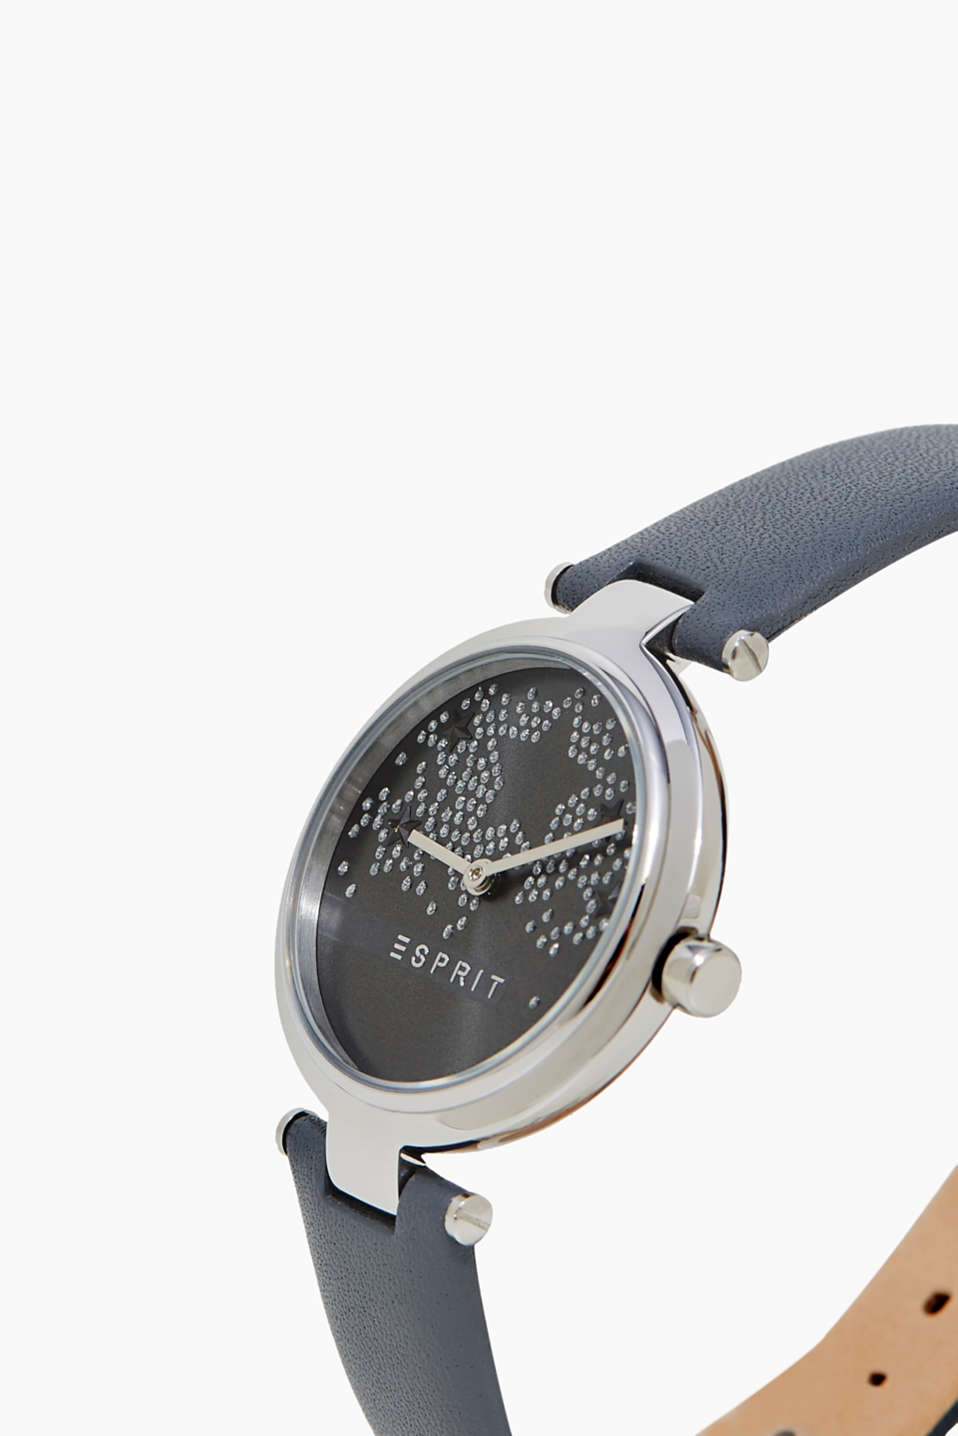 Stainless steel watch with embellished dial